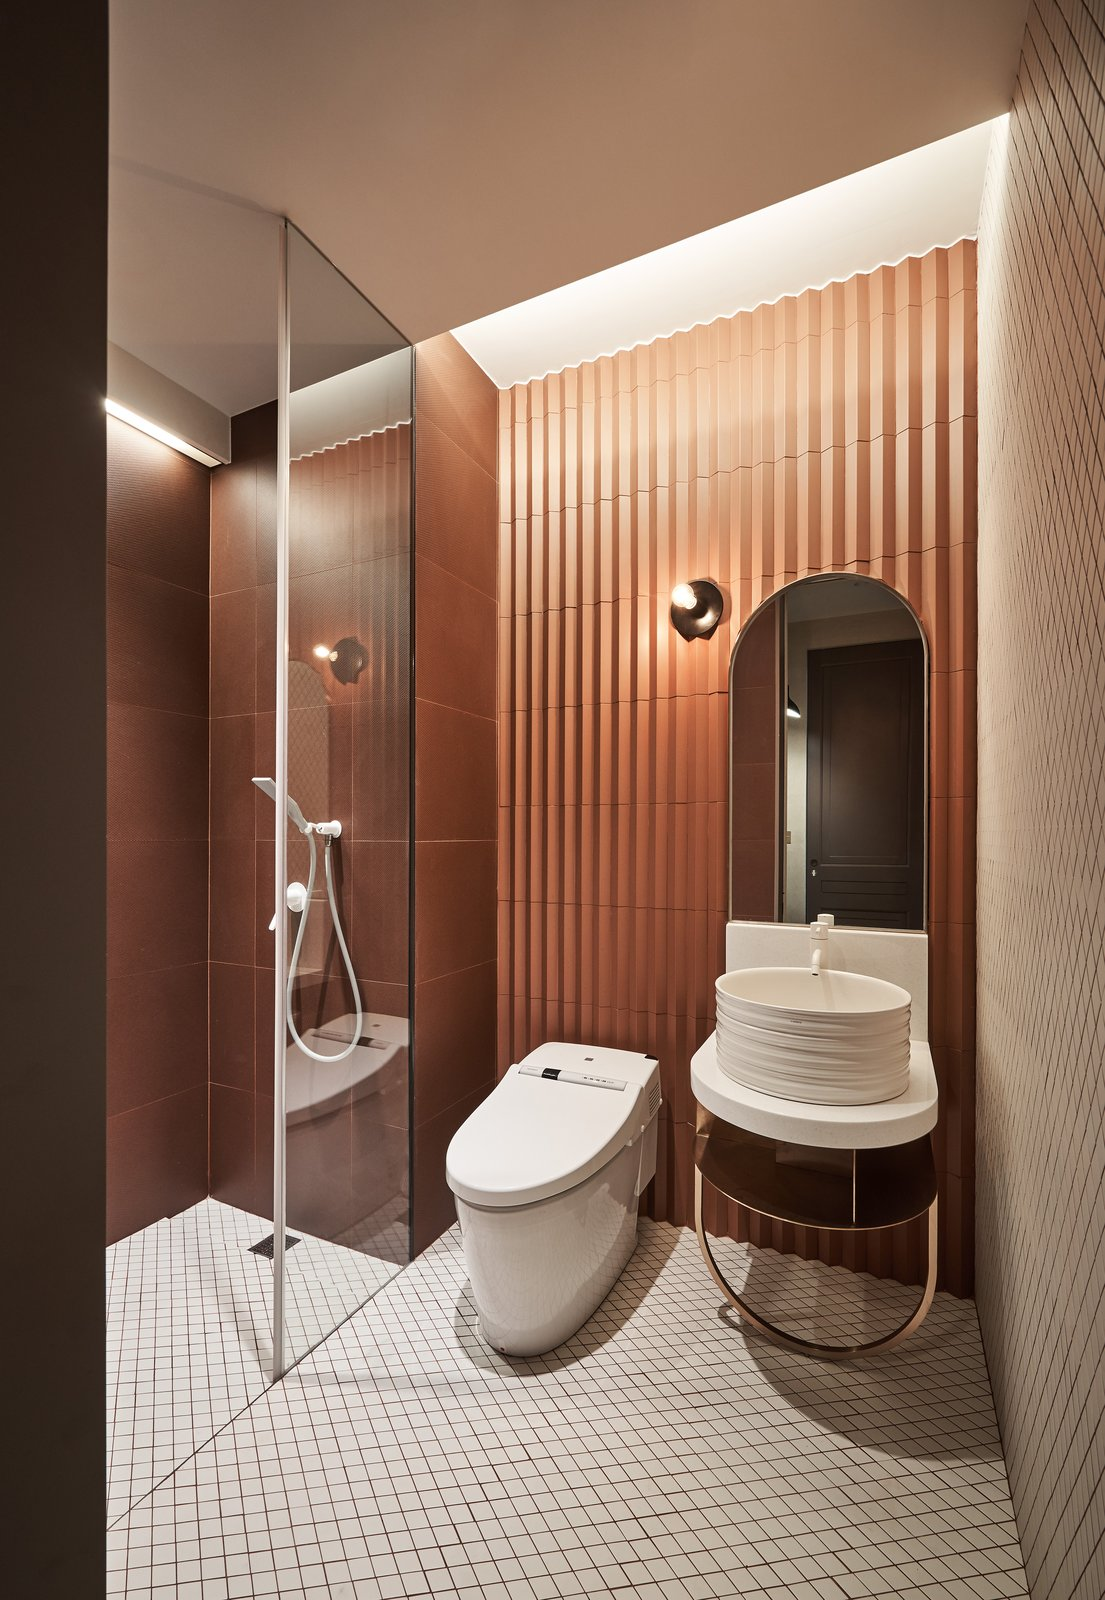 Bath Room, Porcelain Tile Floor, Vessel Sink, Open Shower, Wall Lighting, One Piece Toilet, and Corner Shower A deep vessel sink sits peacefully in this copper-hued bathroom.   Photos from Vintage and Industrial Elements Combine in an Updated Taiwan Apartment